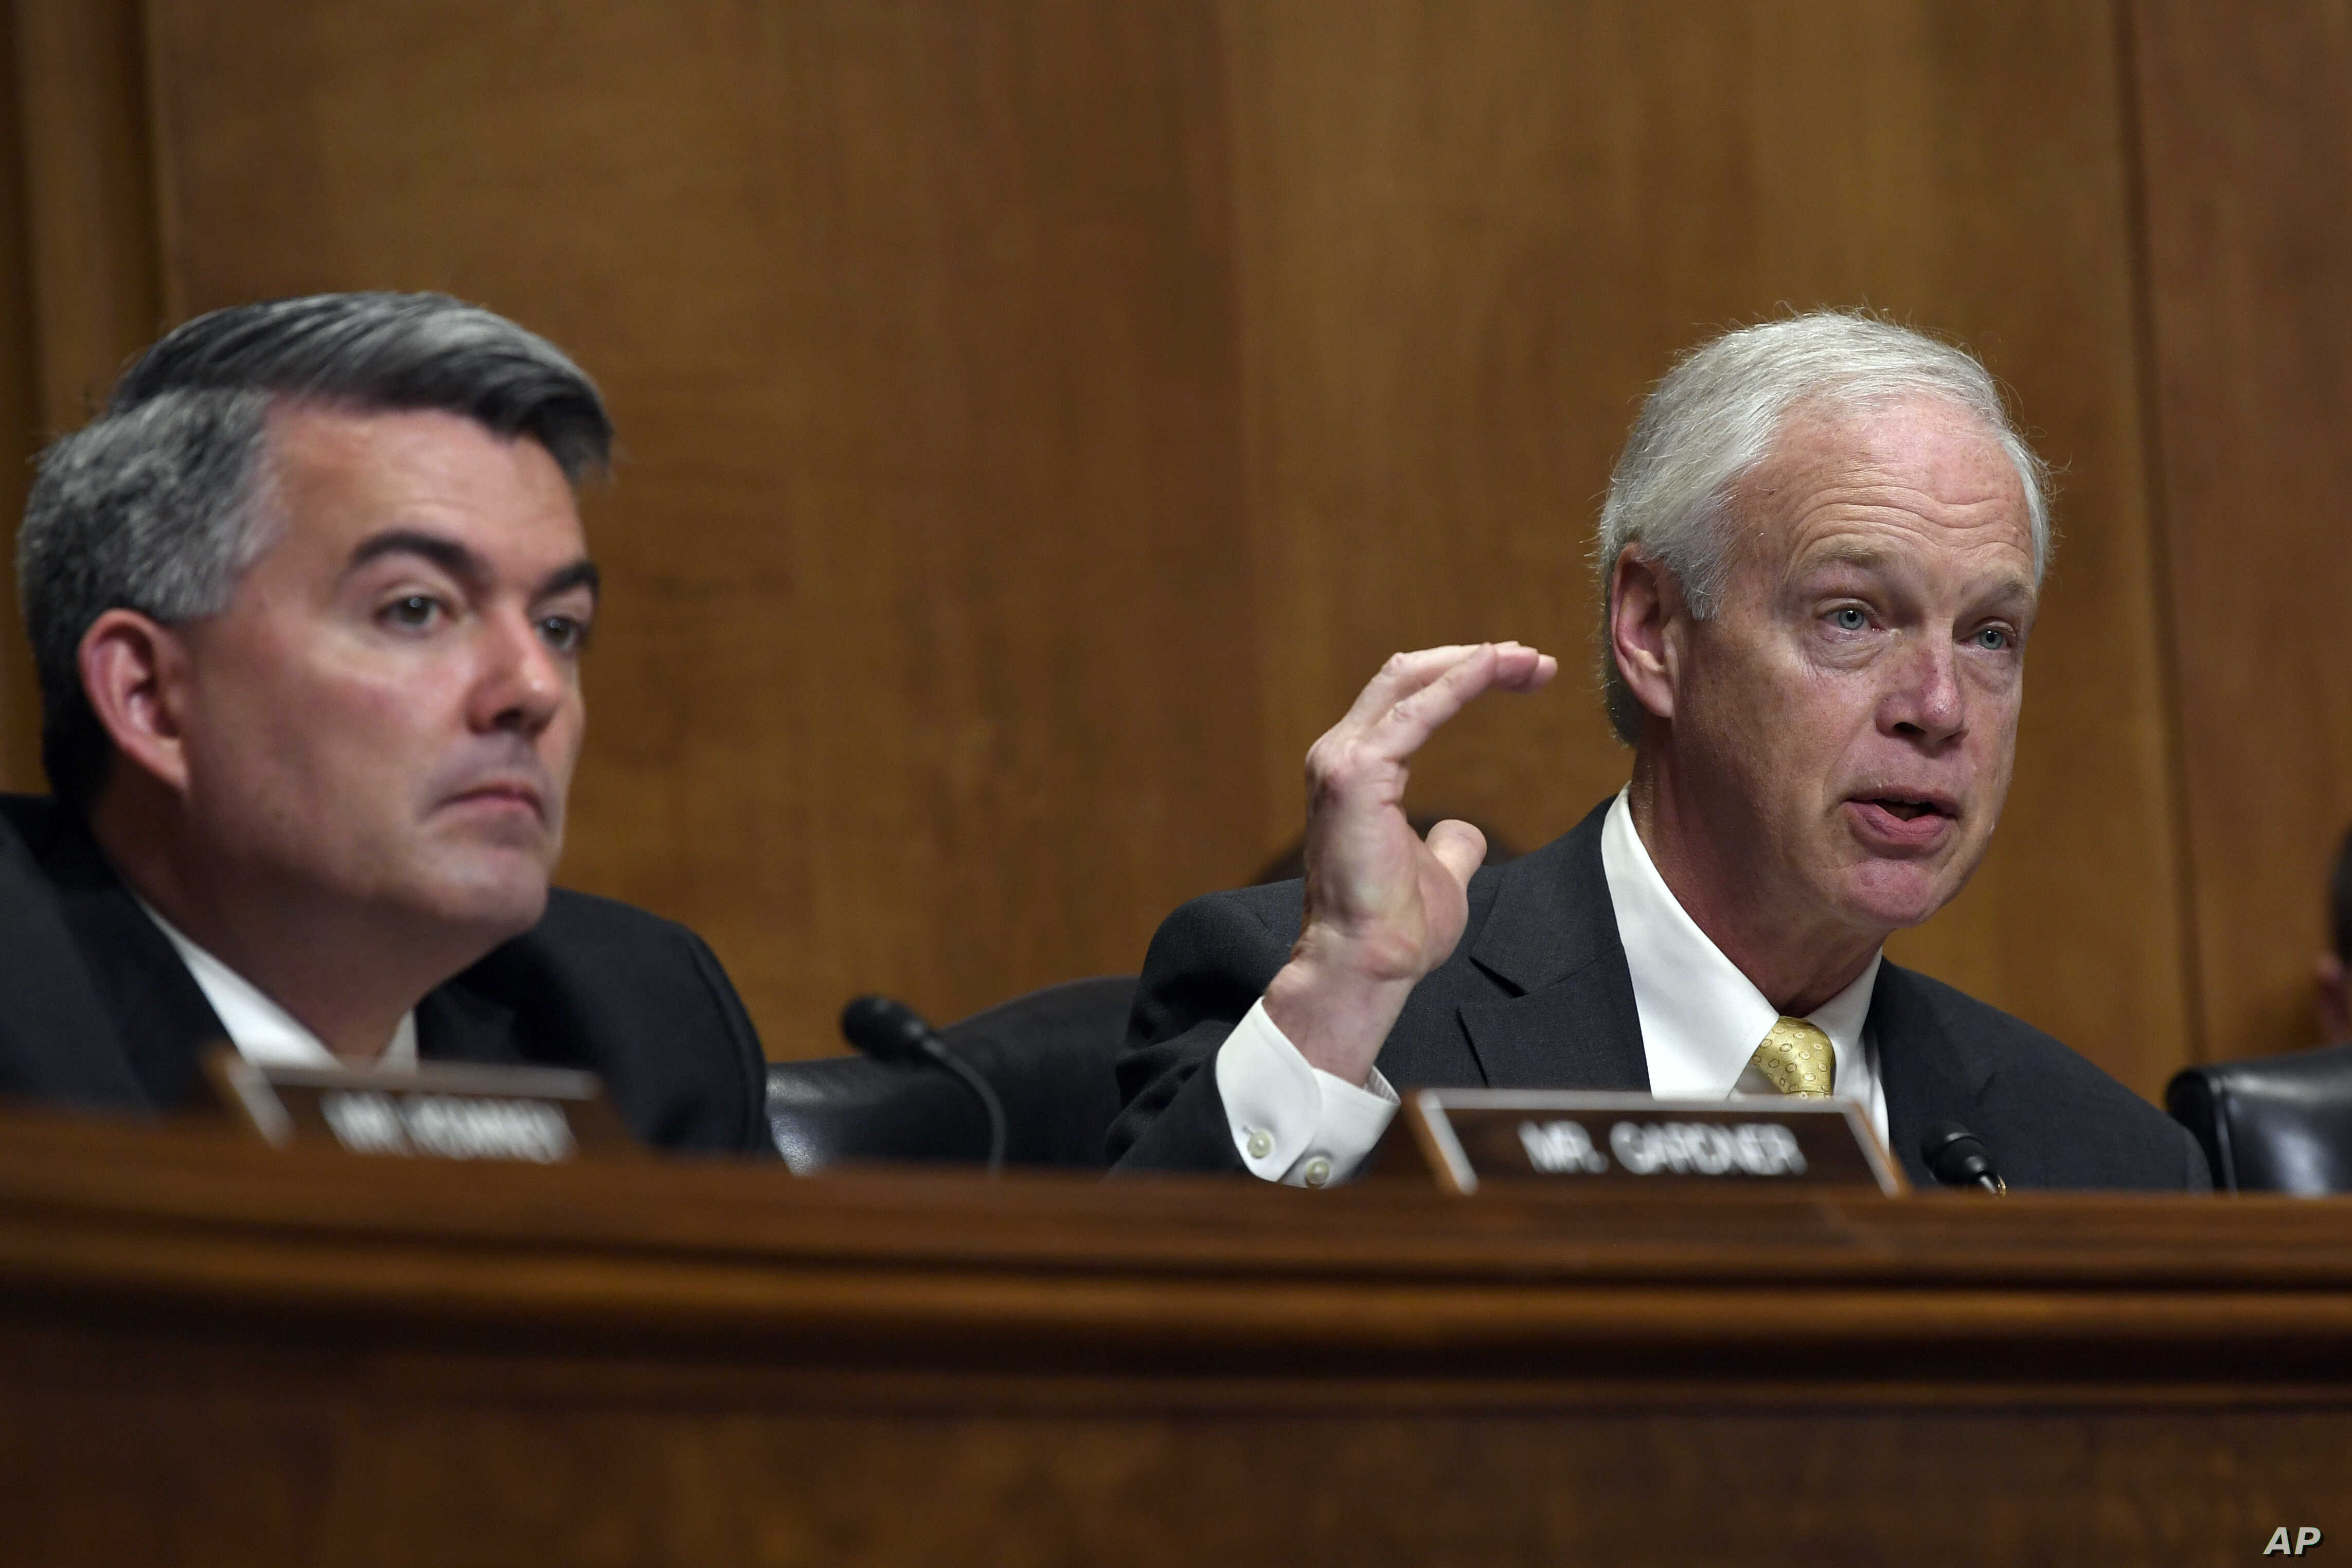 Sen. Ron Johnson, R-Wis. (R), sitting next to Sen. Cory Gardner, R-Colo., asks question of Secretary of State Mike Pompeo as he testifies before the Senate Foreign Relations Committee on Capitol Hill in Washington, April 10, 2019, during a hearing to...